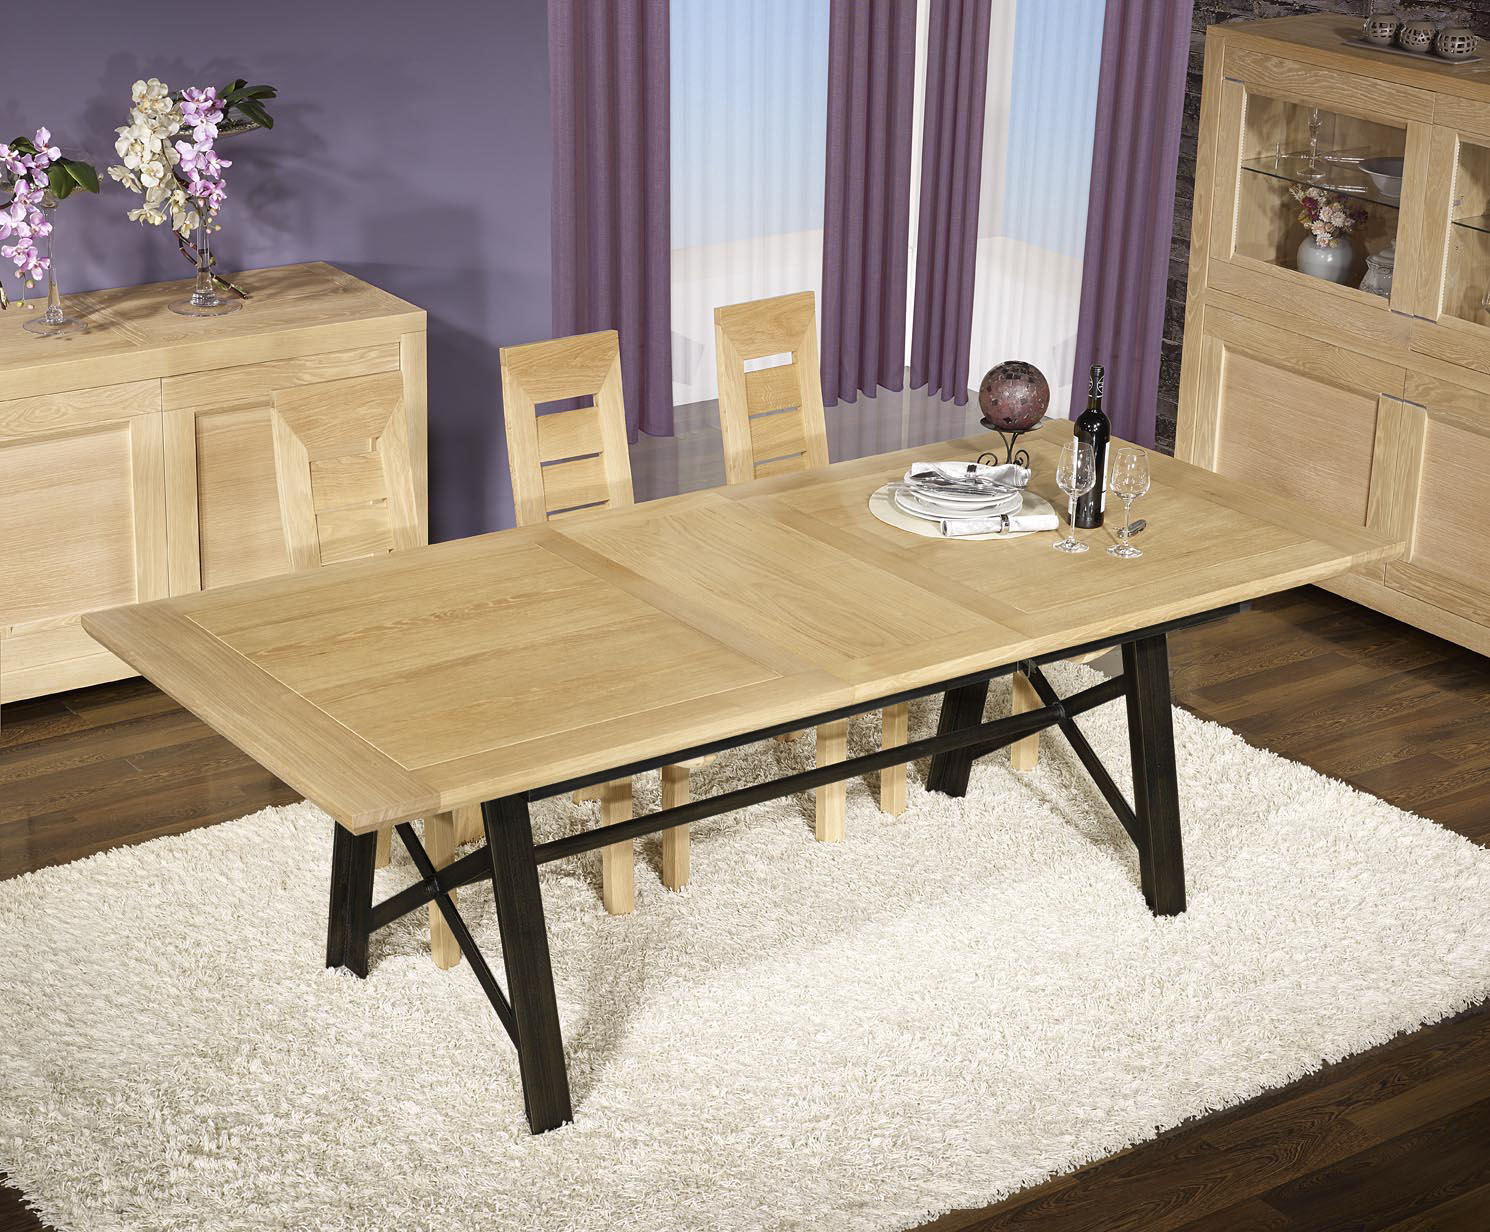 table rectangulaire loann en ch ne et fer 190x100 avec 2 allonges de 45 cm meuble en ch ne massif. Black Bedroom Furniture Sets. Home Design Ideas